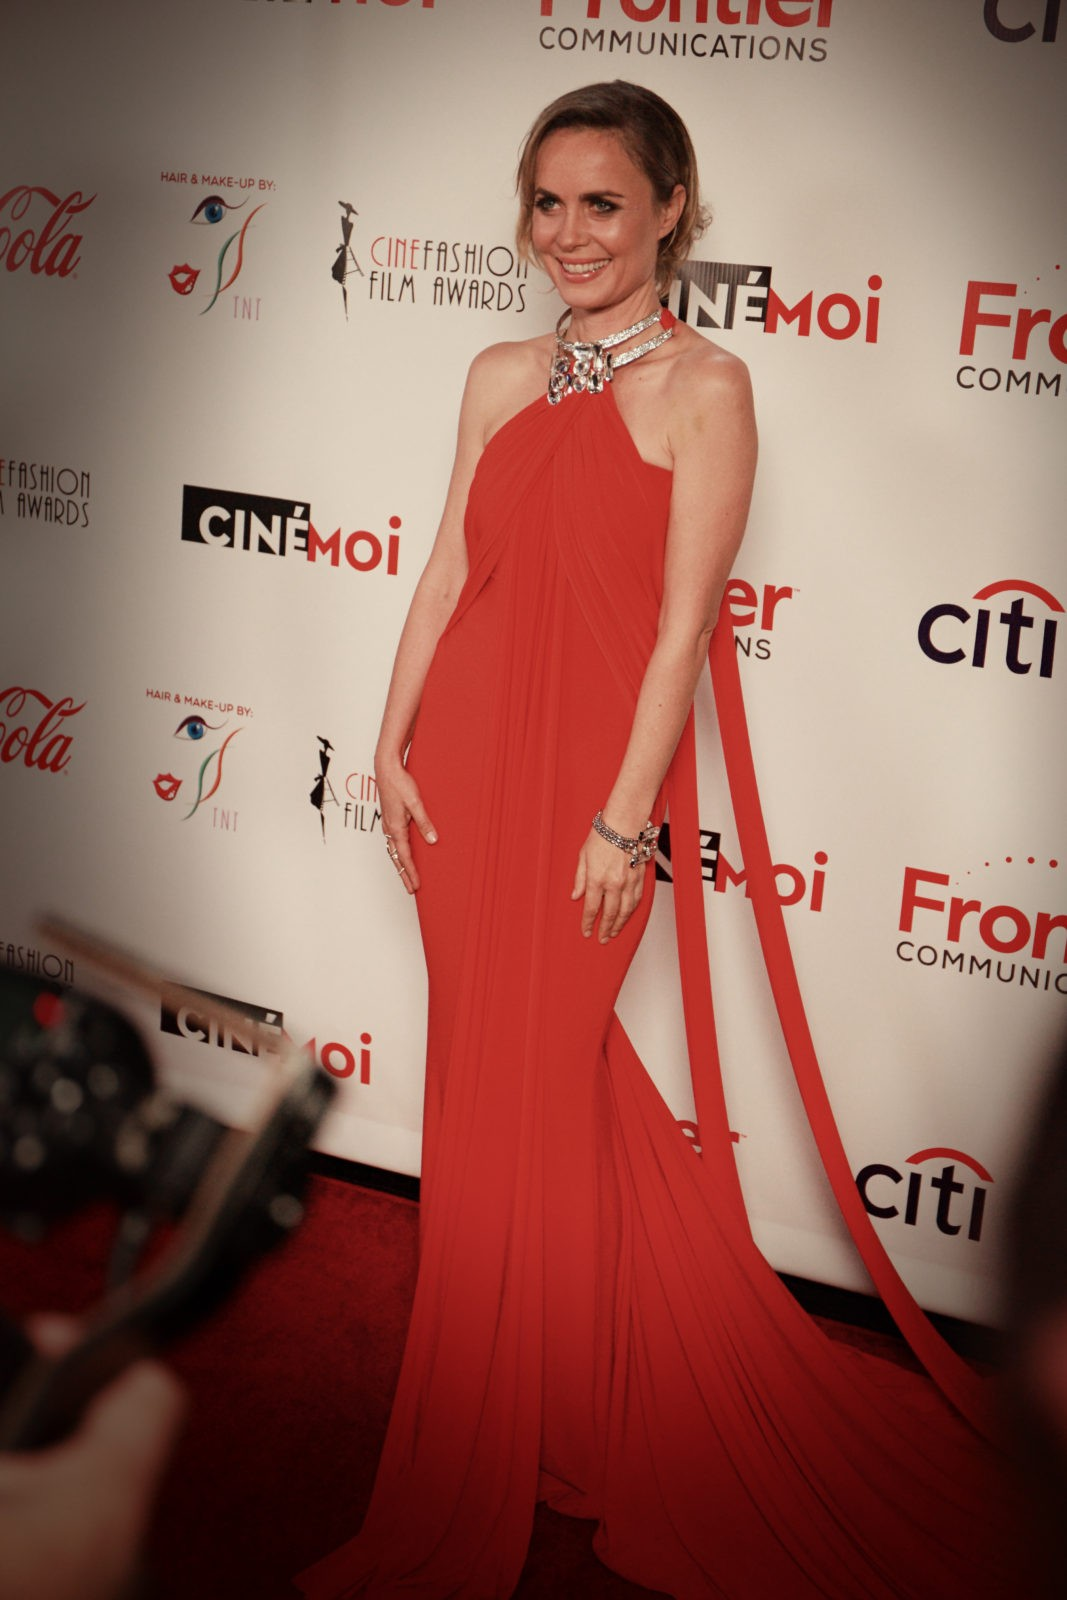 cinefilm-fashion-awards-basic-magazineimg_5525pcinefilm-fashion-awards-basic-magazine